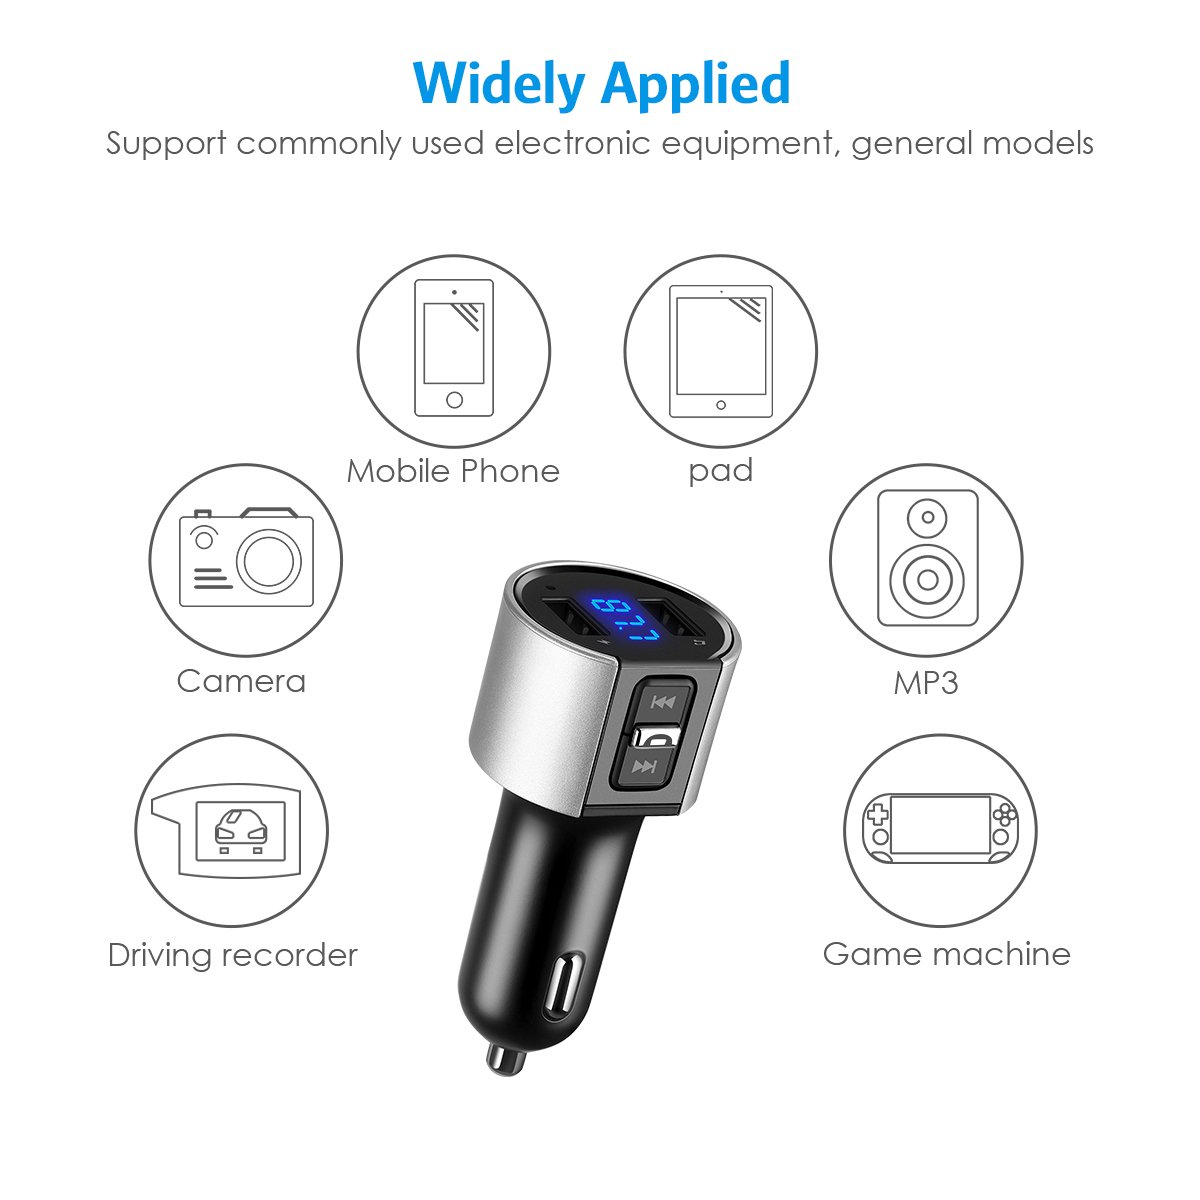 Criacr Bluetooth FM Transmitter, Wireless Bluetooth Radio Adapter Car Charger with Hands-free Calling, 5V / 3.4A Dual USB Charging Port, for iPhone Samsung, etc. (Silver) by AMIR (Image #6)